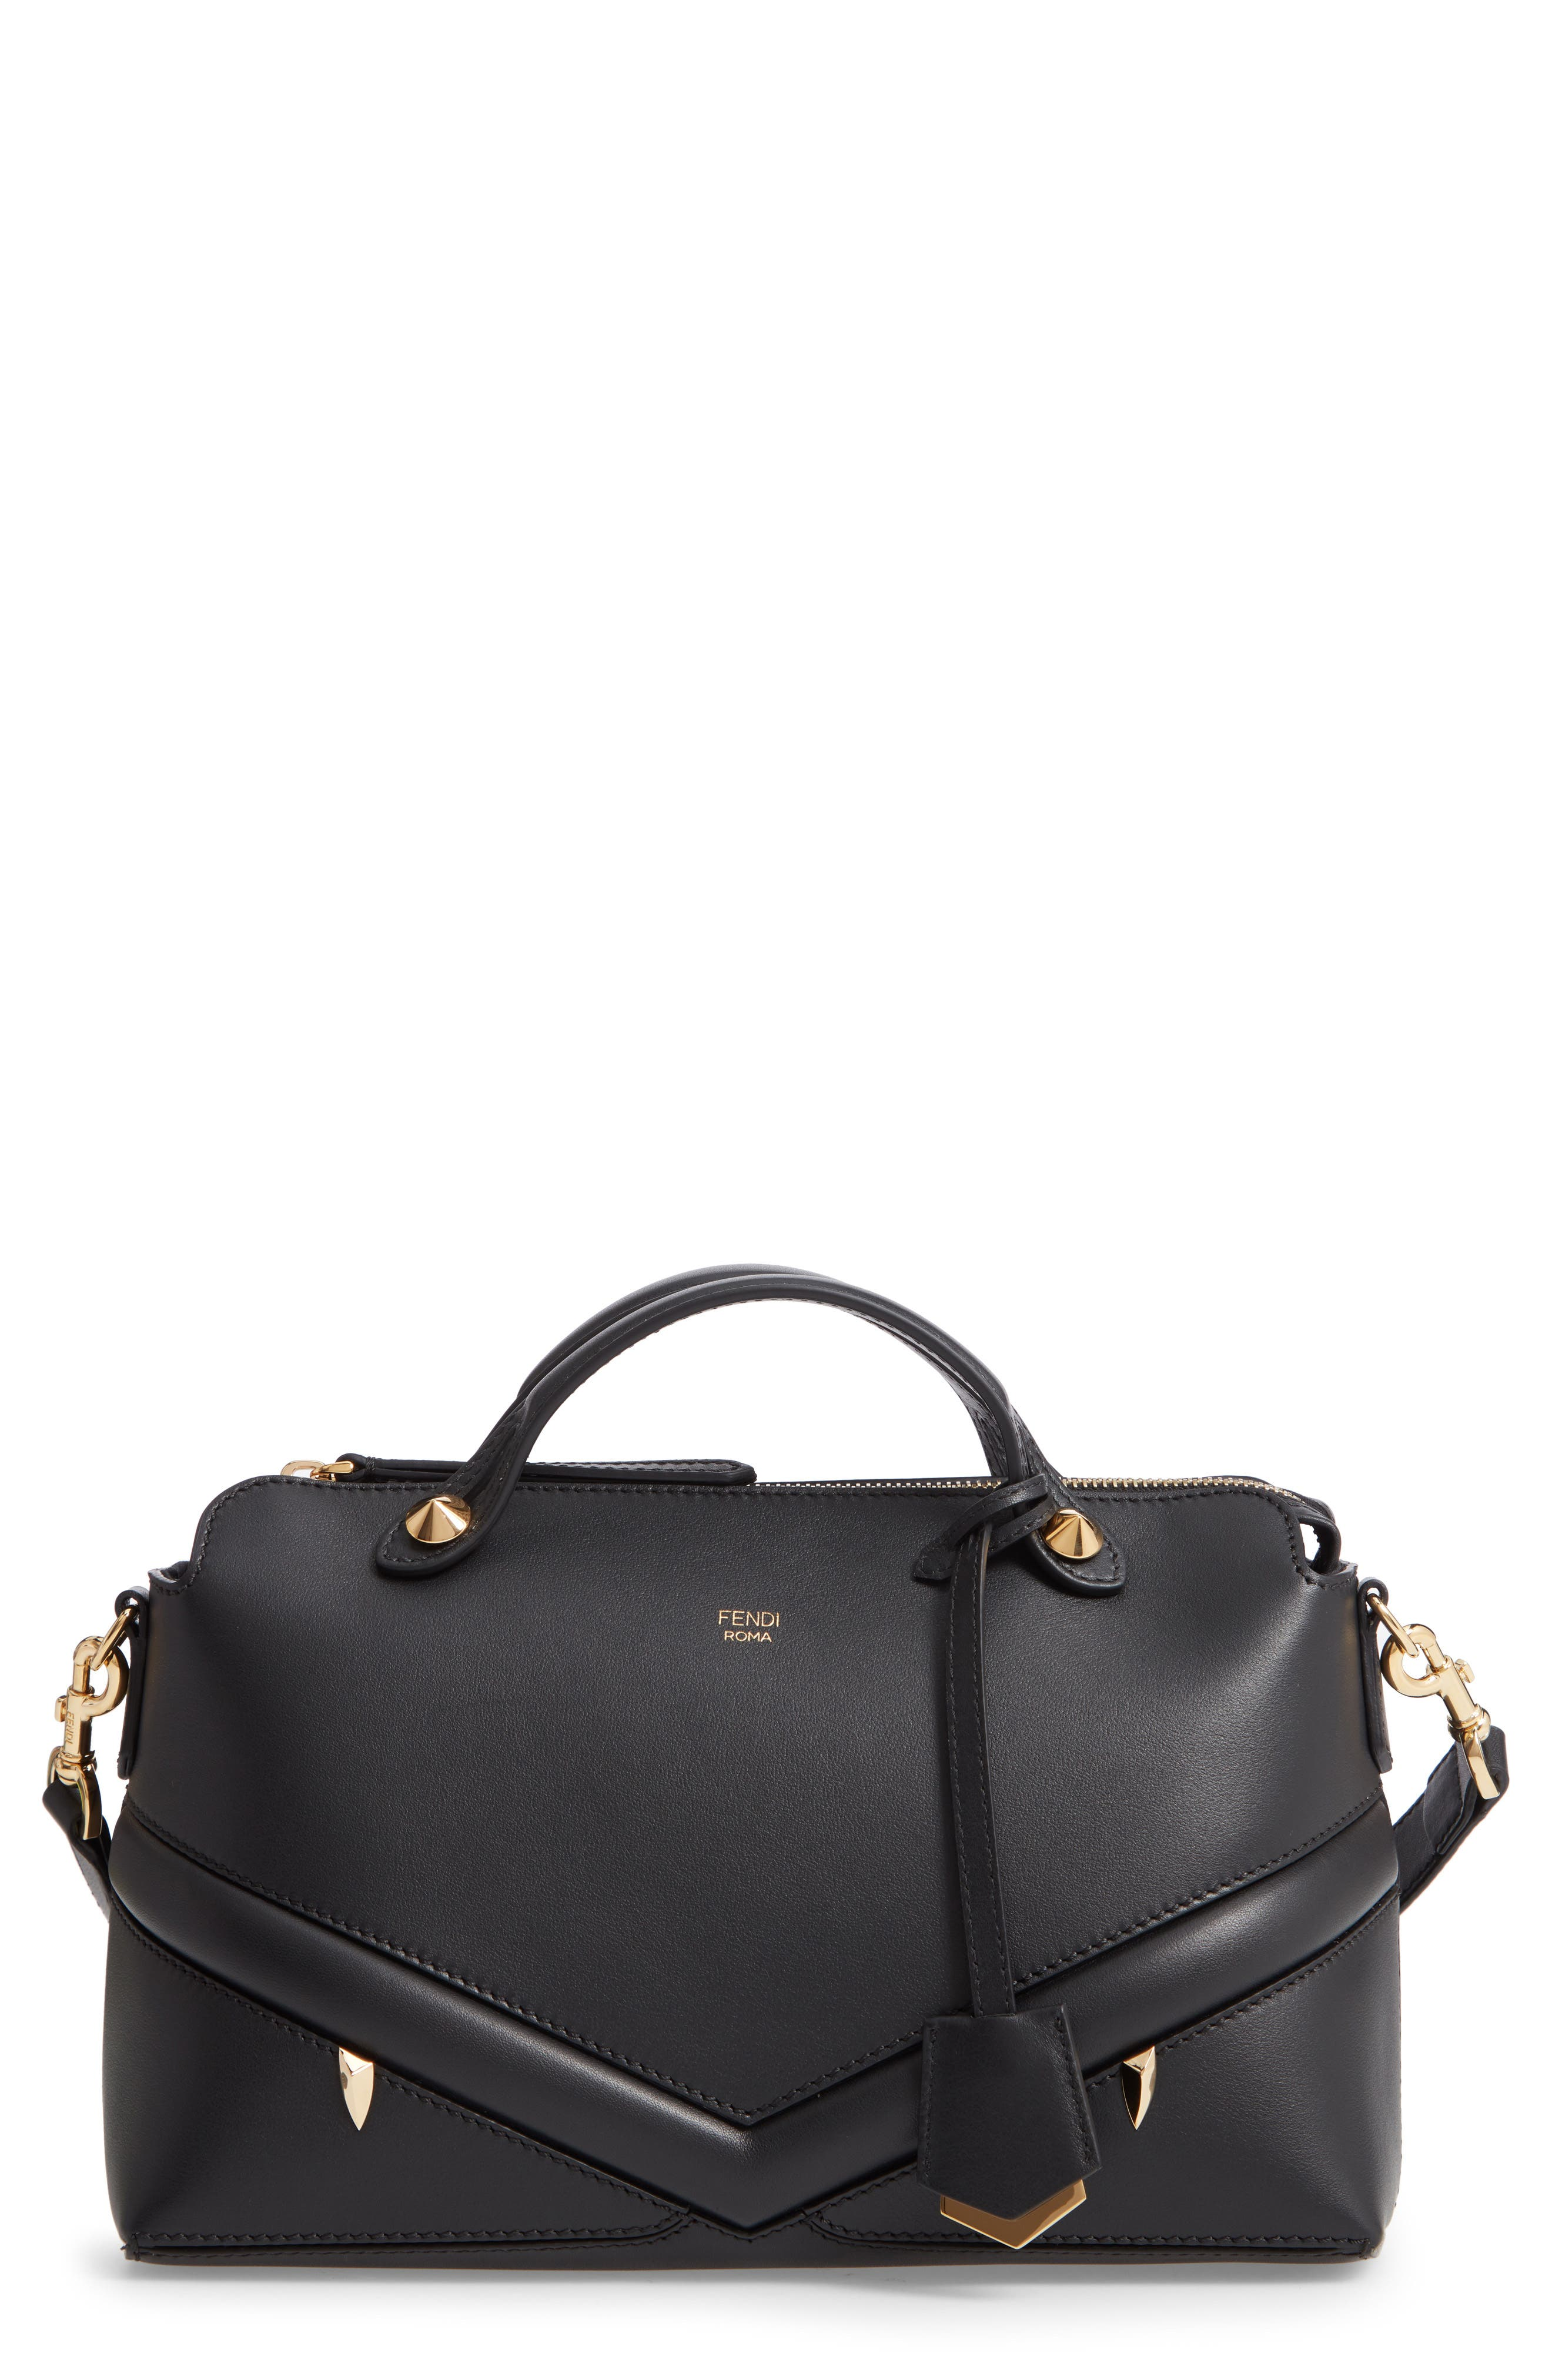 By the Way - Wonders Convertible Leather Shoulder Bag,                         Main,                         color, NERO/ ORO SOFT